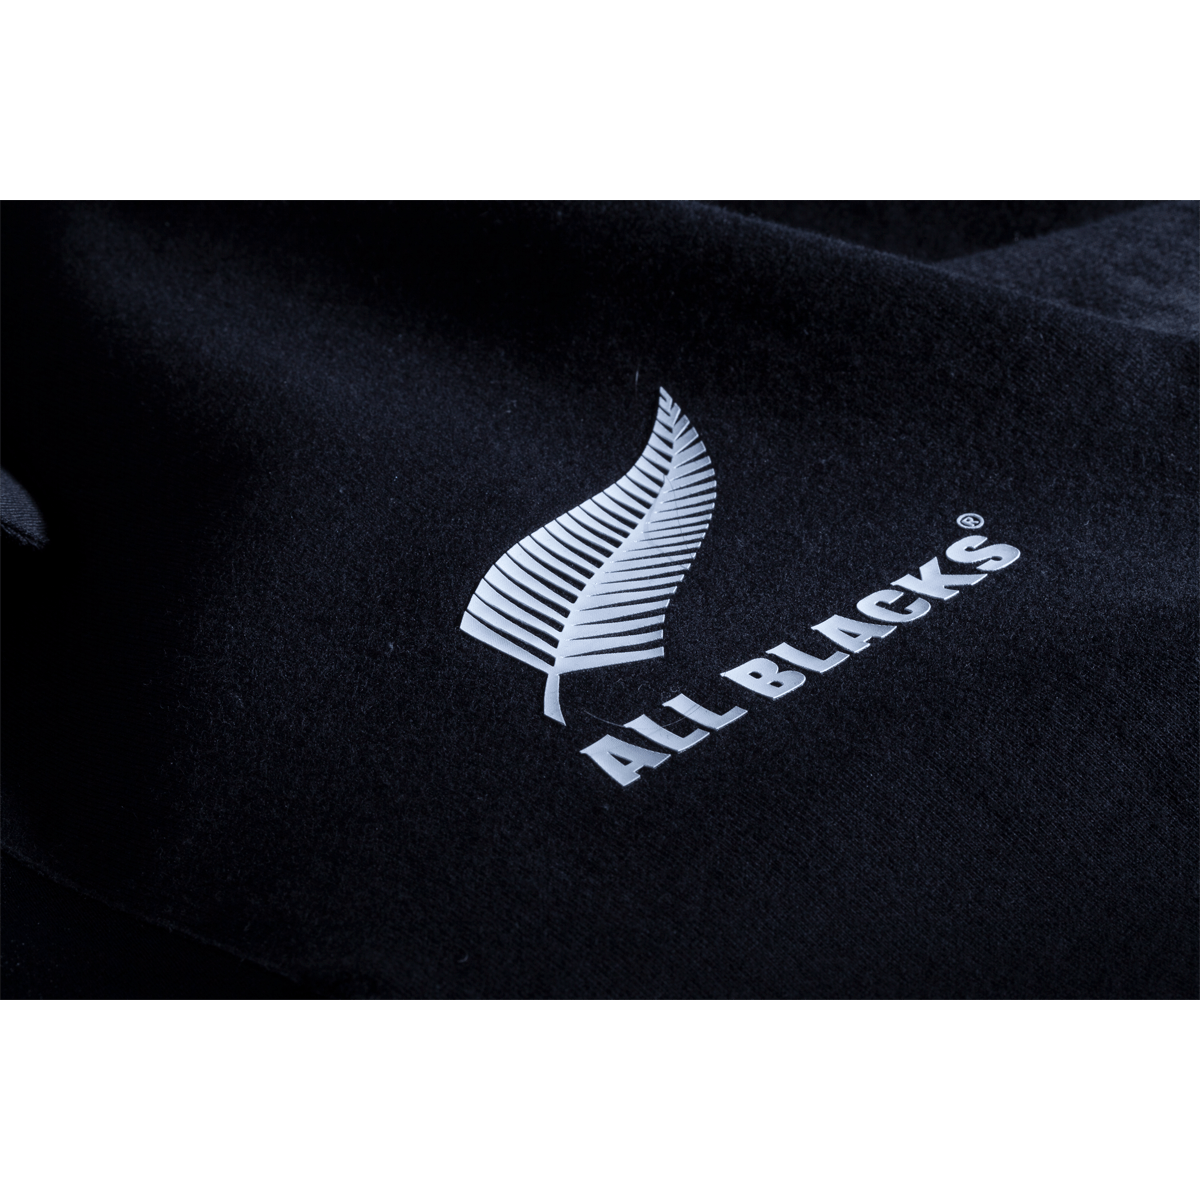 adidas All Blacks Rugby 19 Supporters' Home Jersey